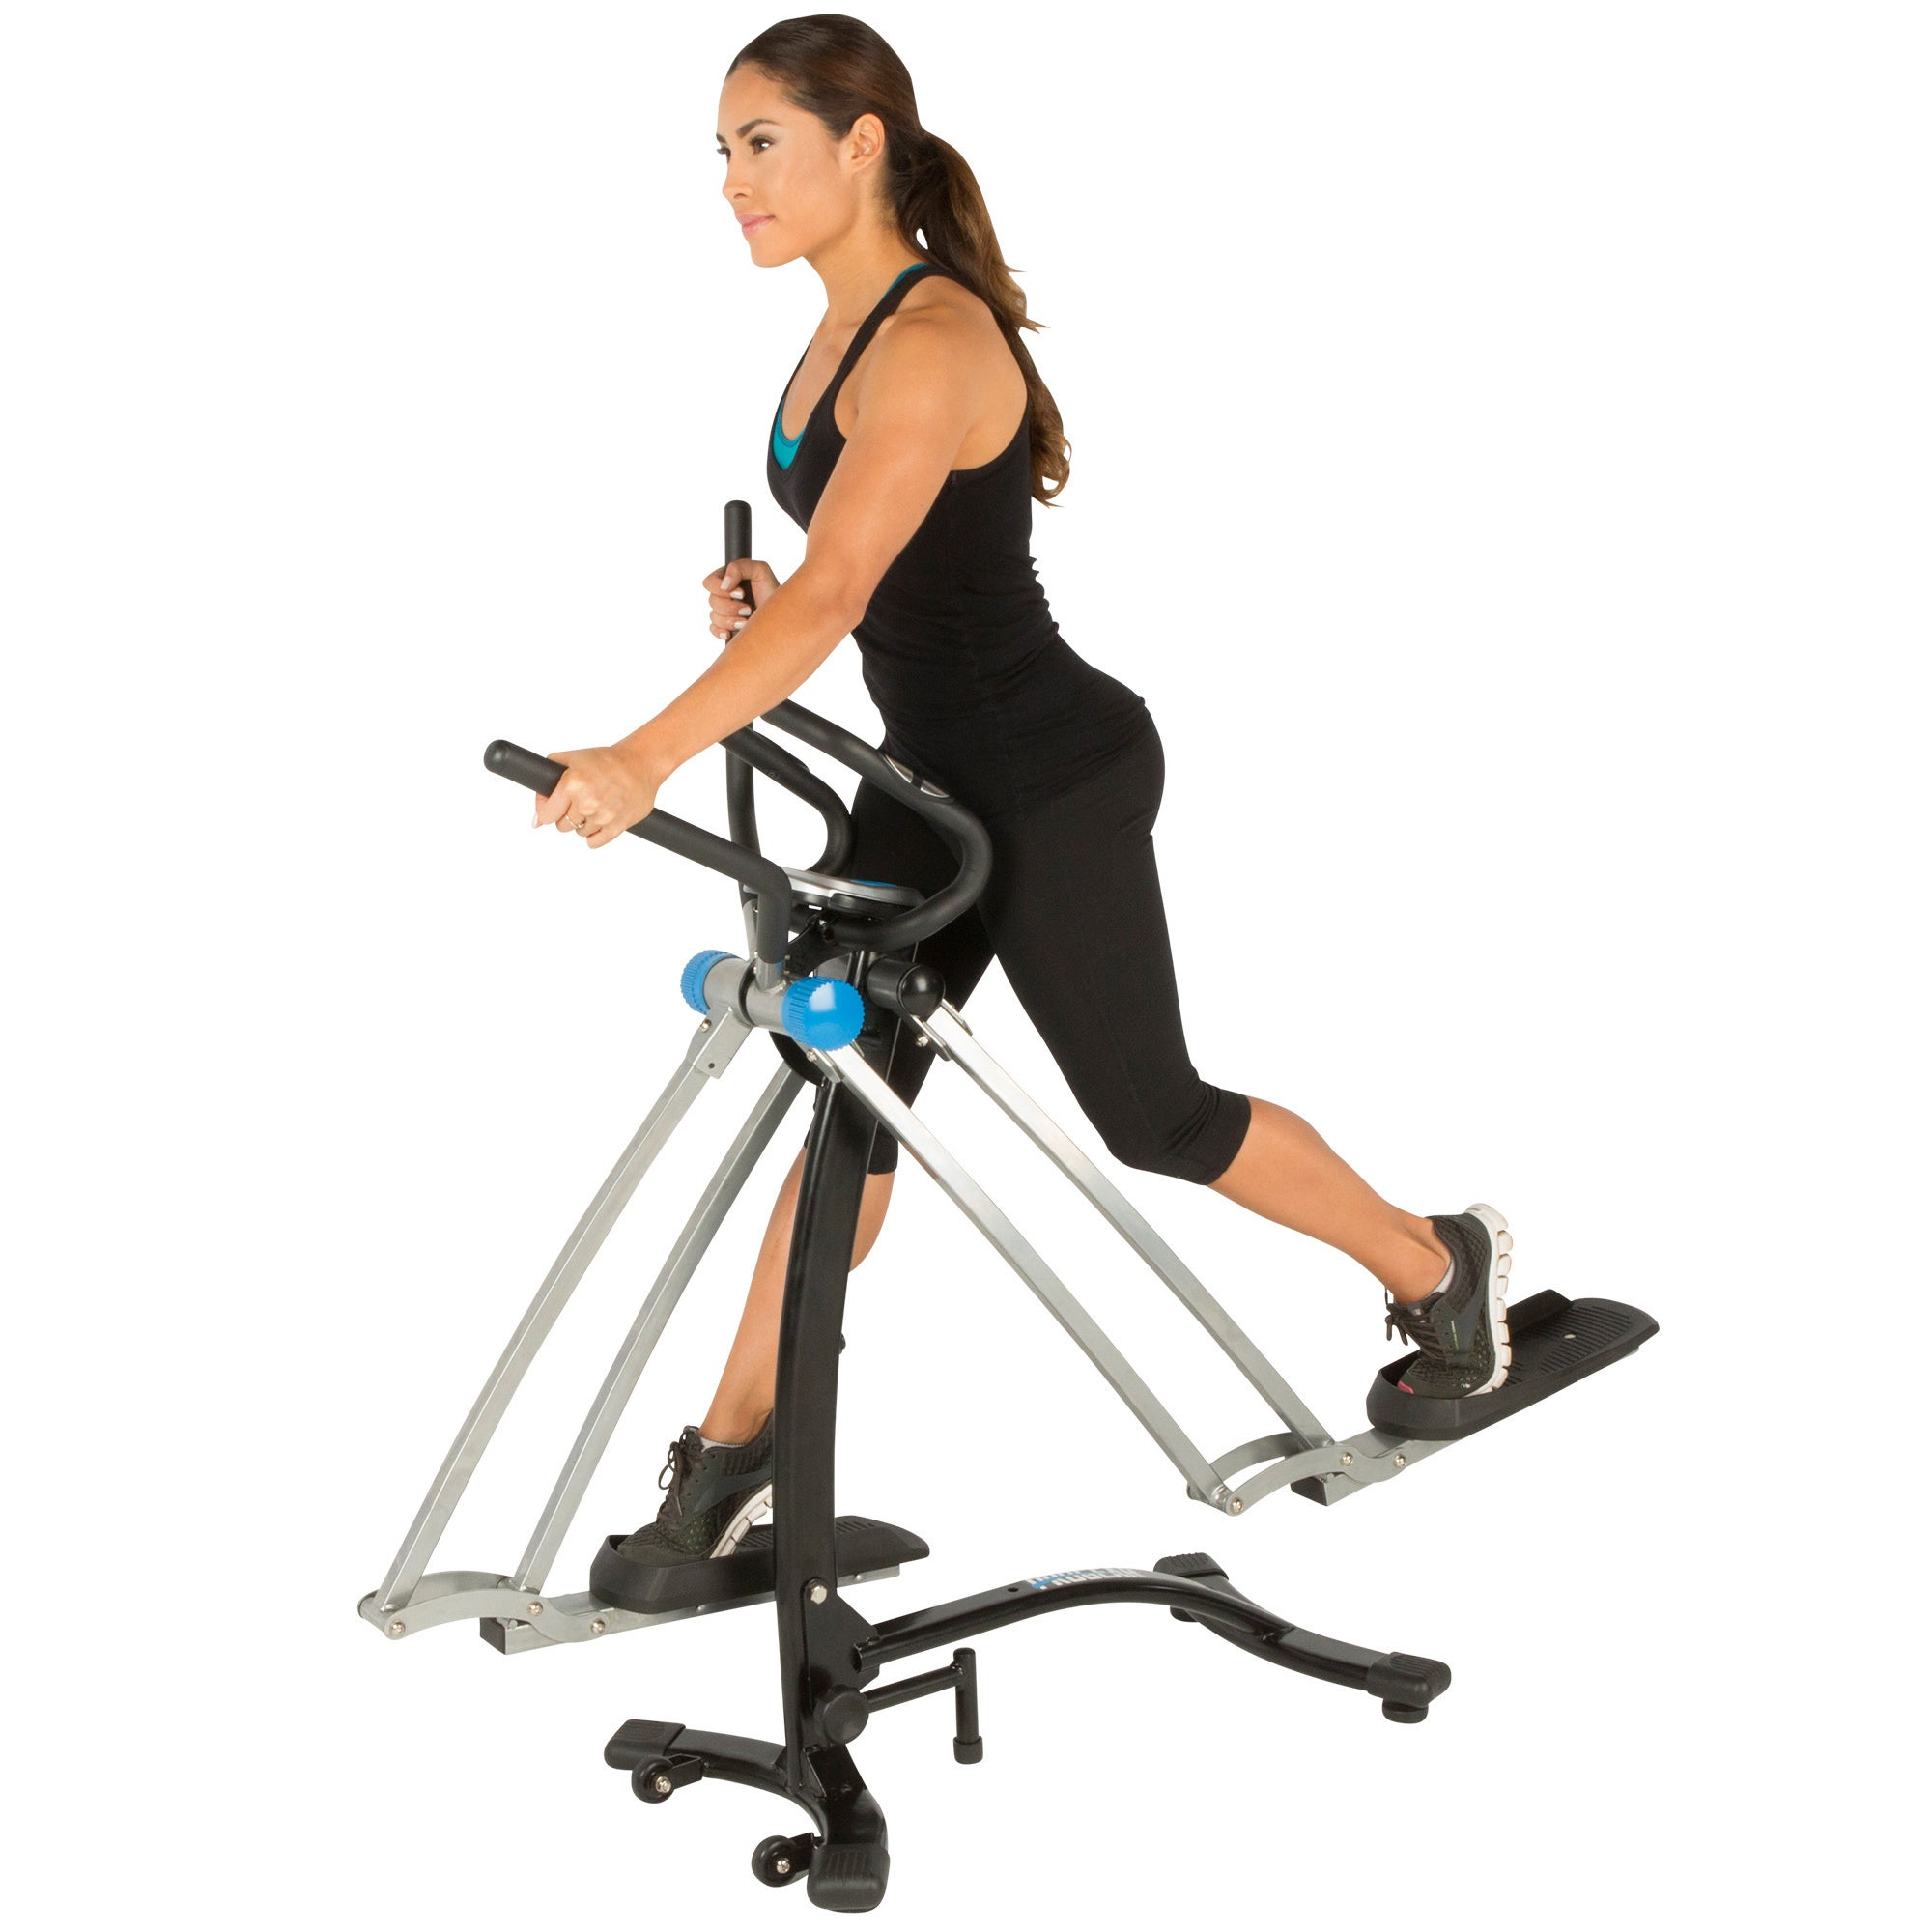 Progear 36-inch Dual Action 360-degree Multi-direction St...